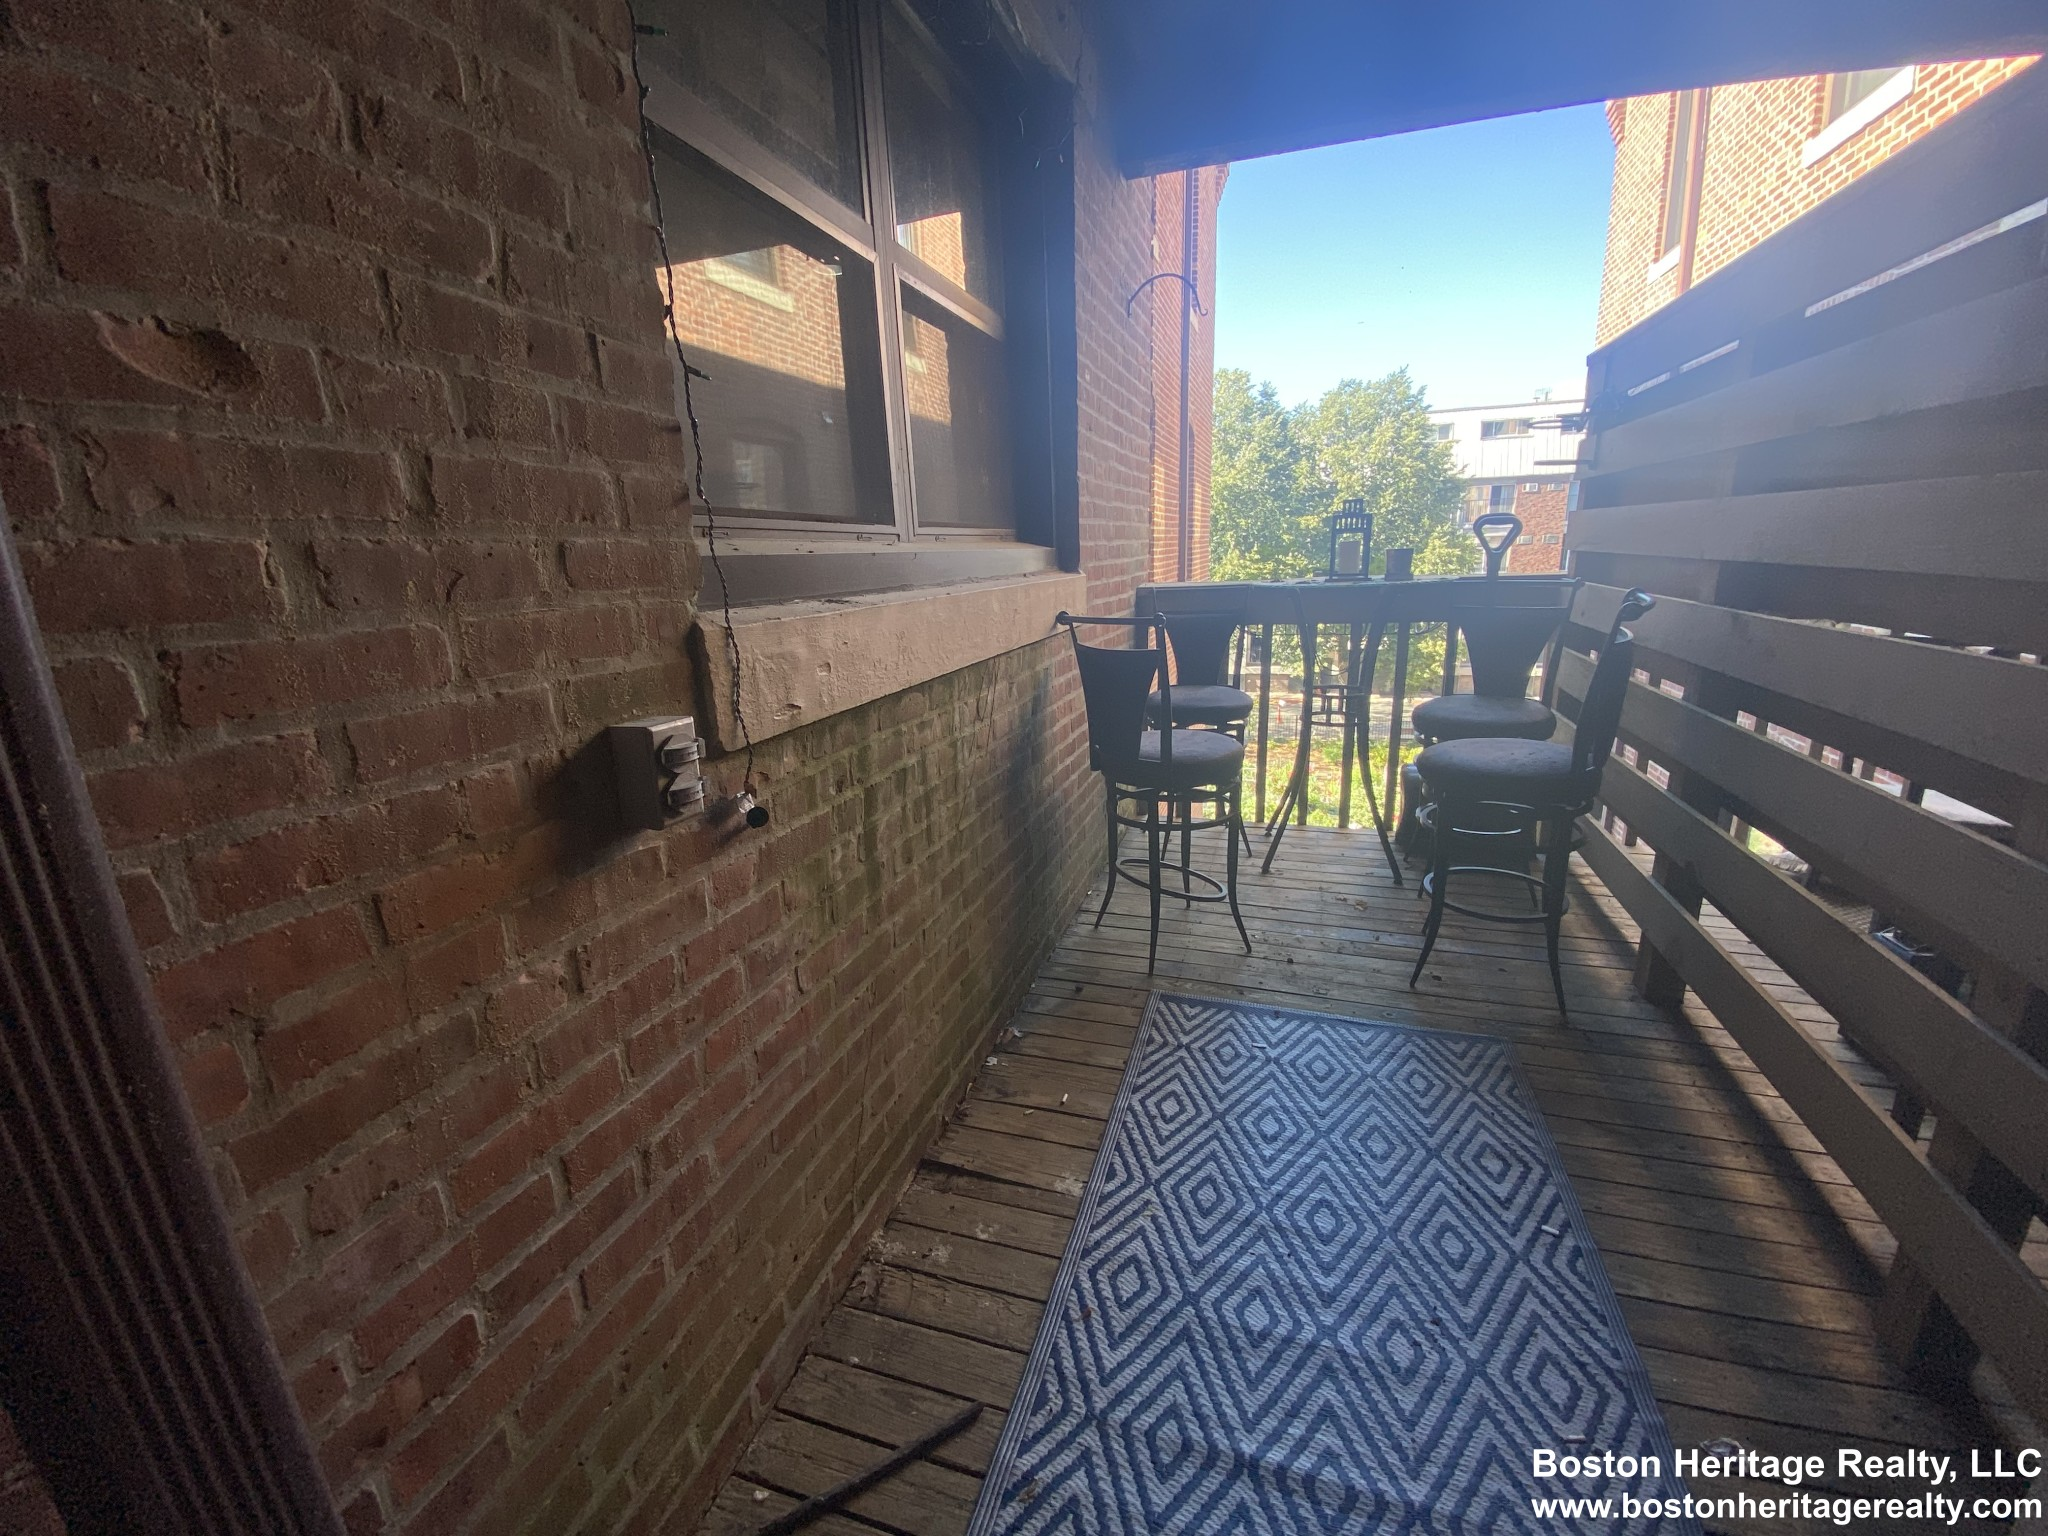 2 Beds, 1 Bath apartment in Boston, Fenway for $3,100